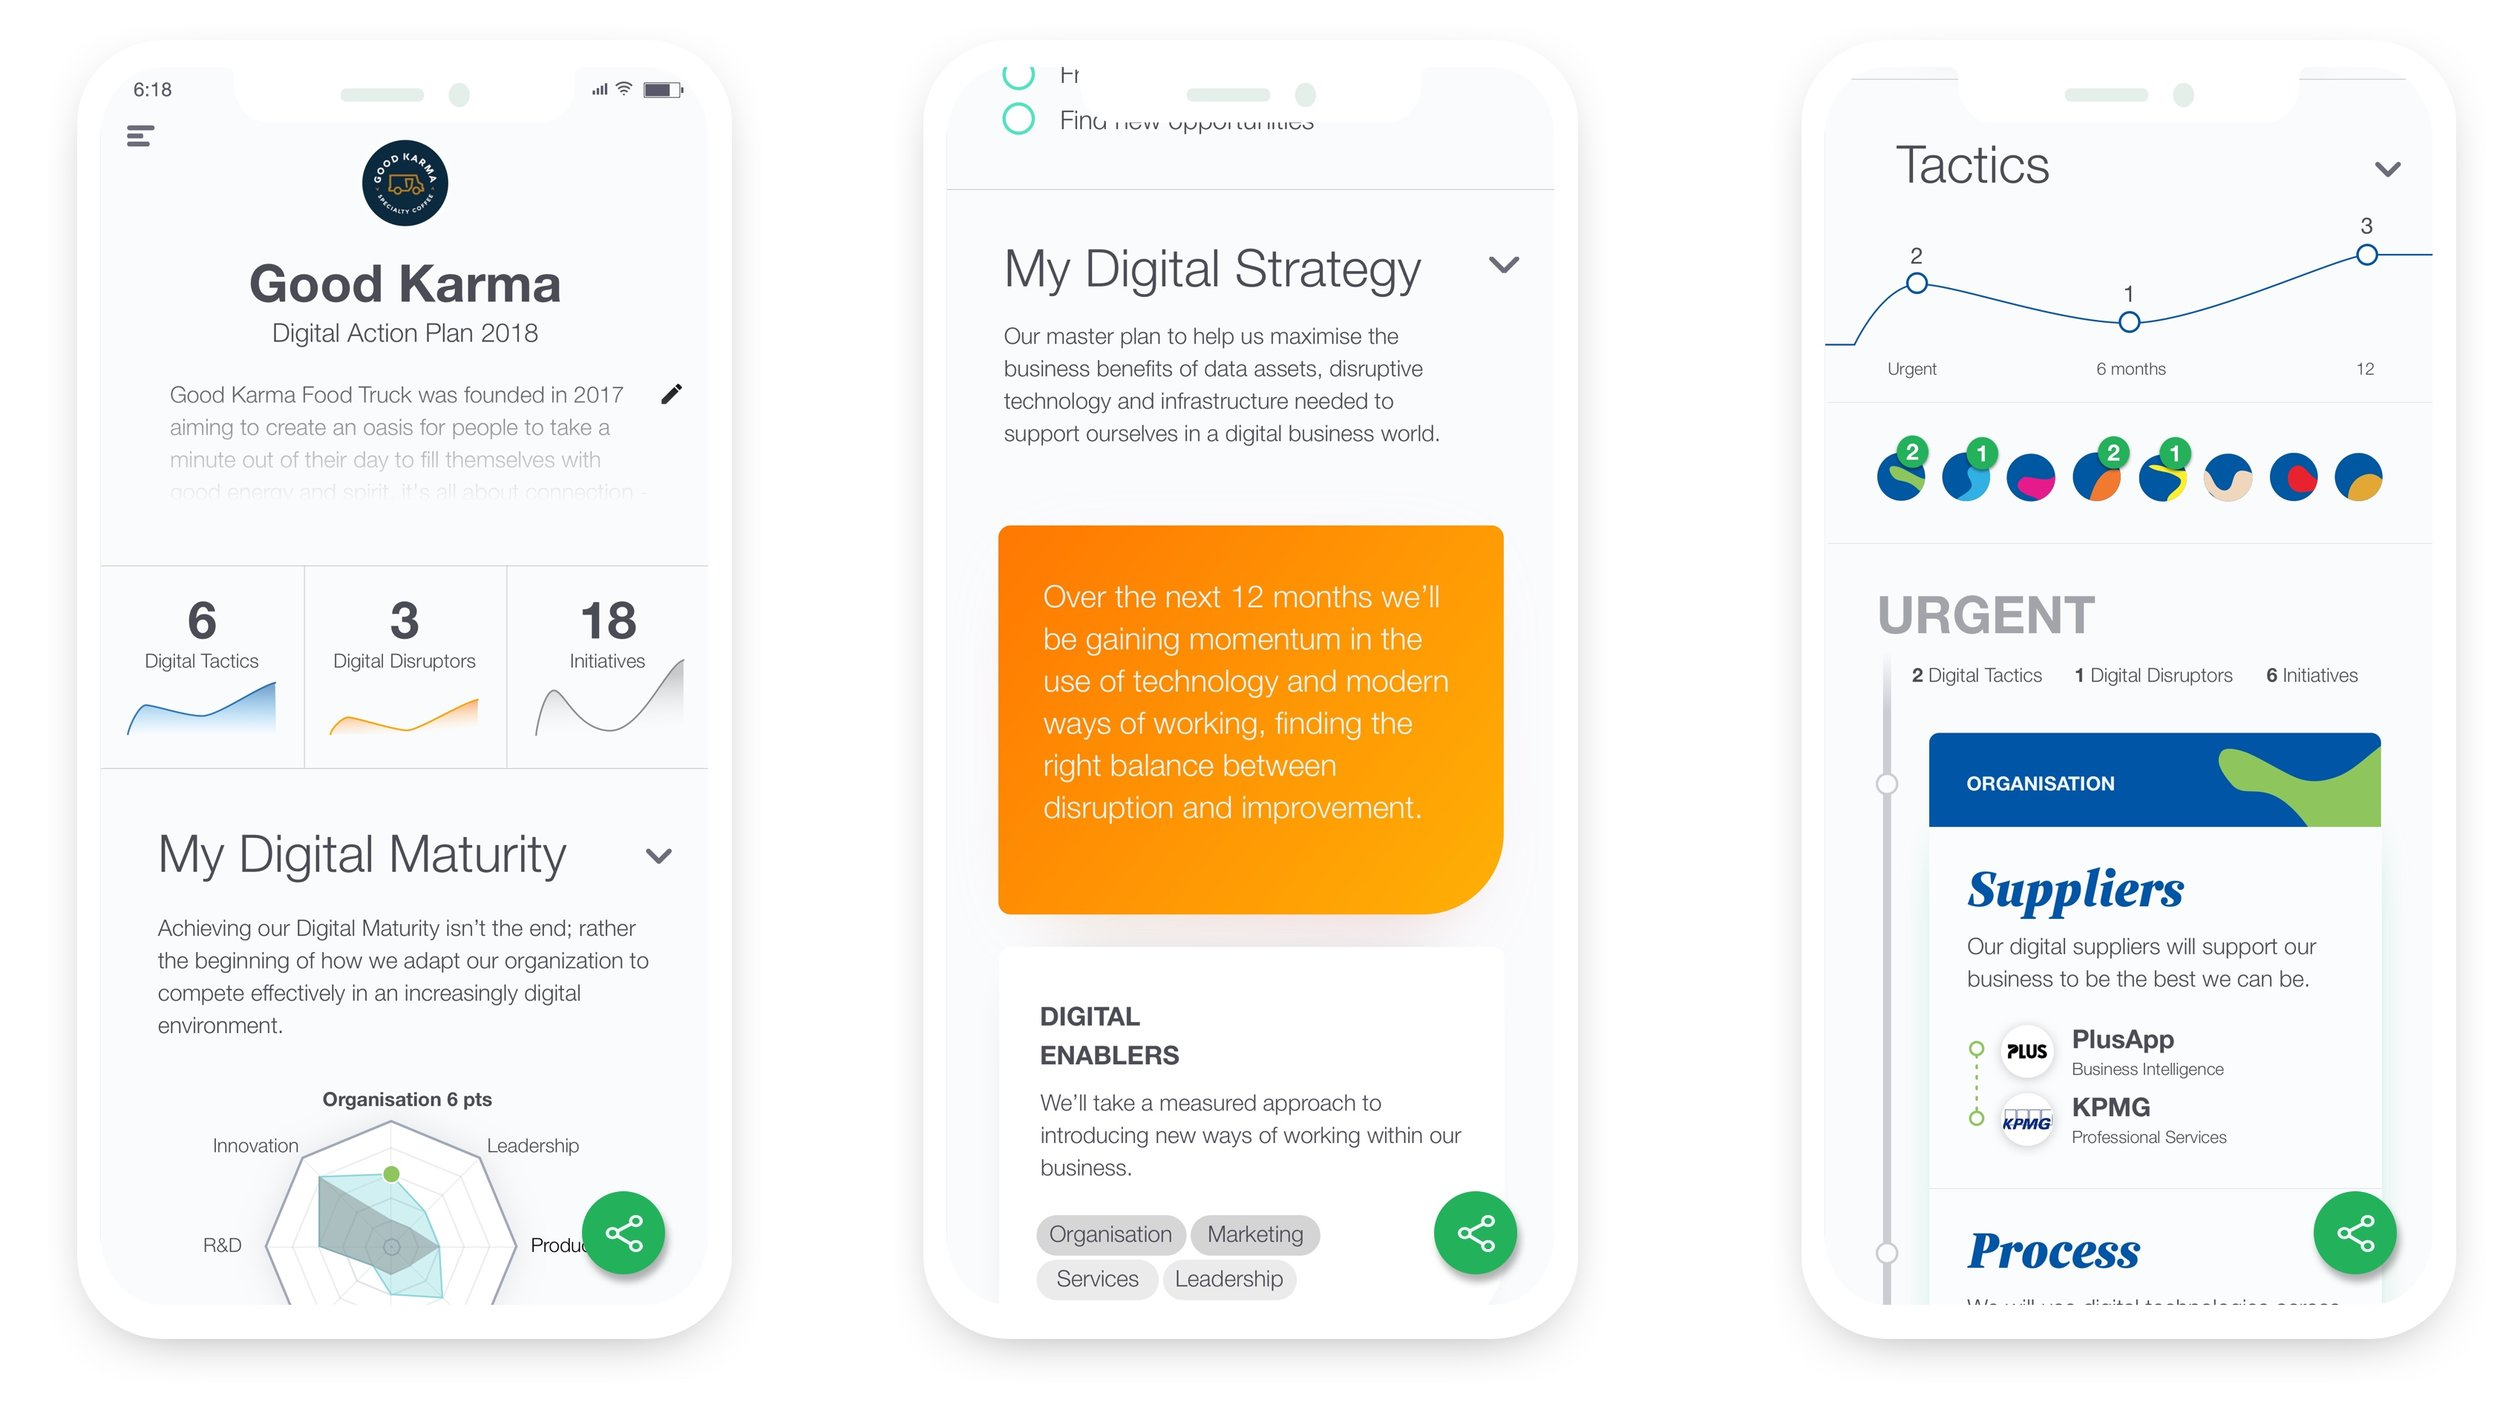 du.today Tailored Digital Action Plan in your mobile